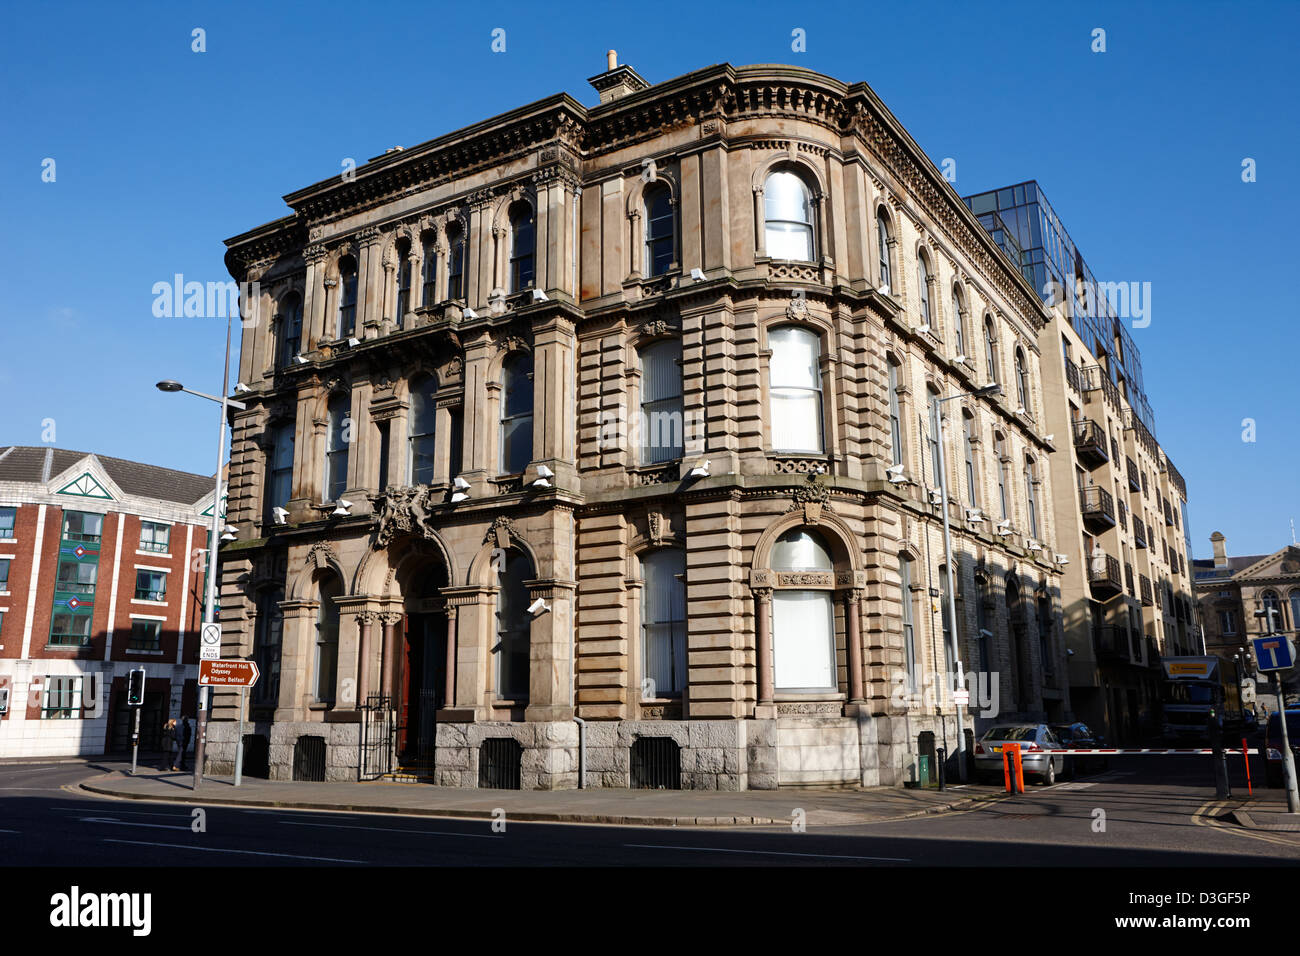 the headline building former scottish amicable life assurance company Belfast Northern Ireland uk - Stock Image